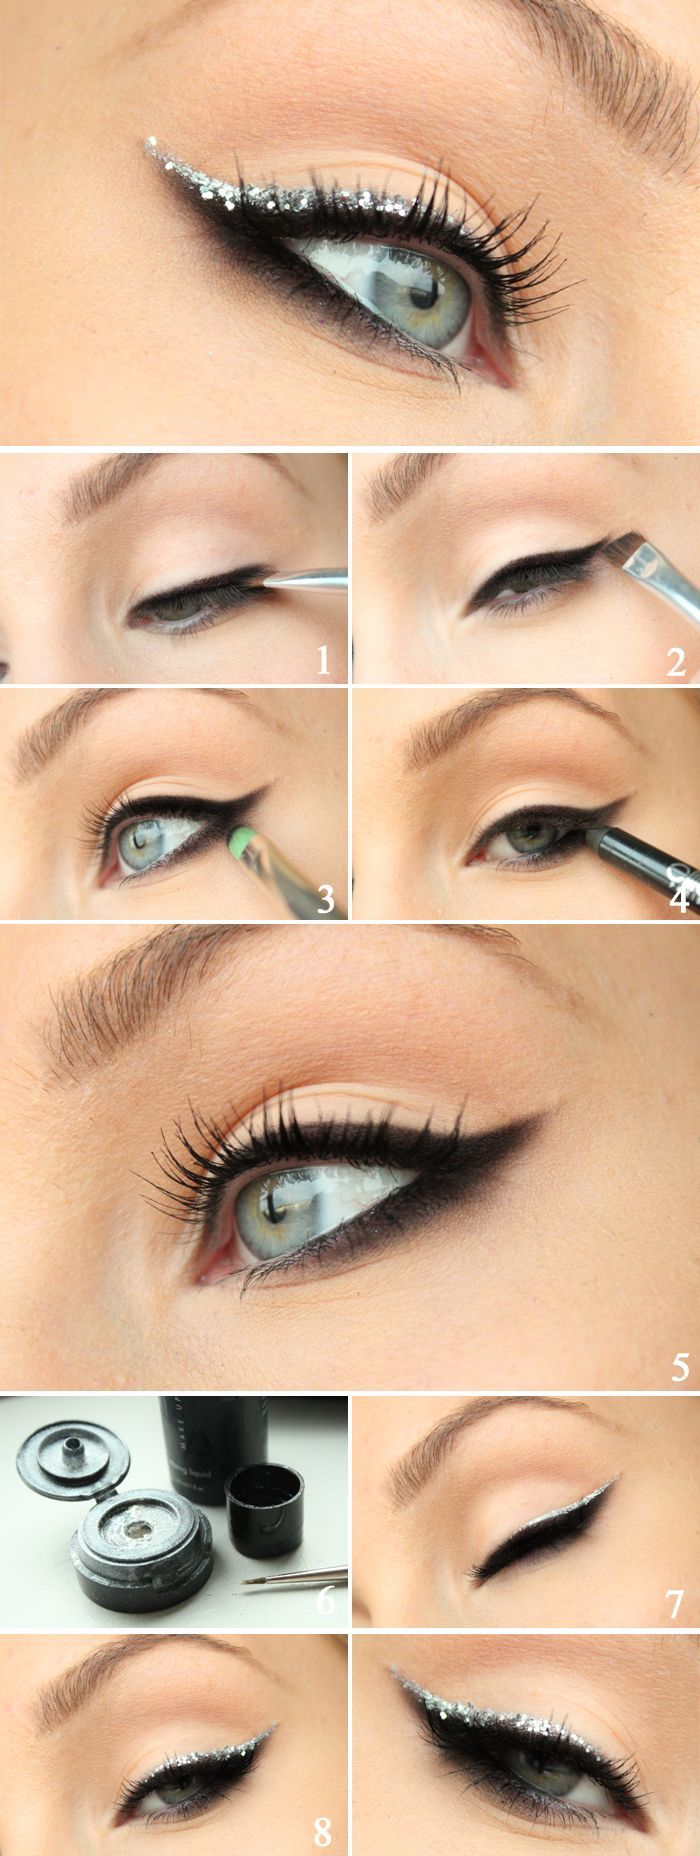 Tutorial – Smokey Eyeliner with Silver Glitter                                                                                                                                                                                 More